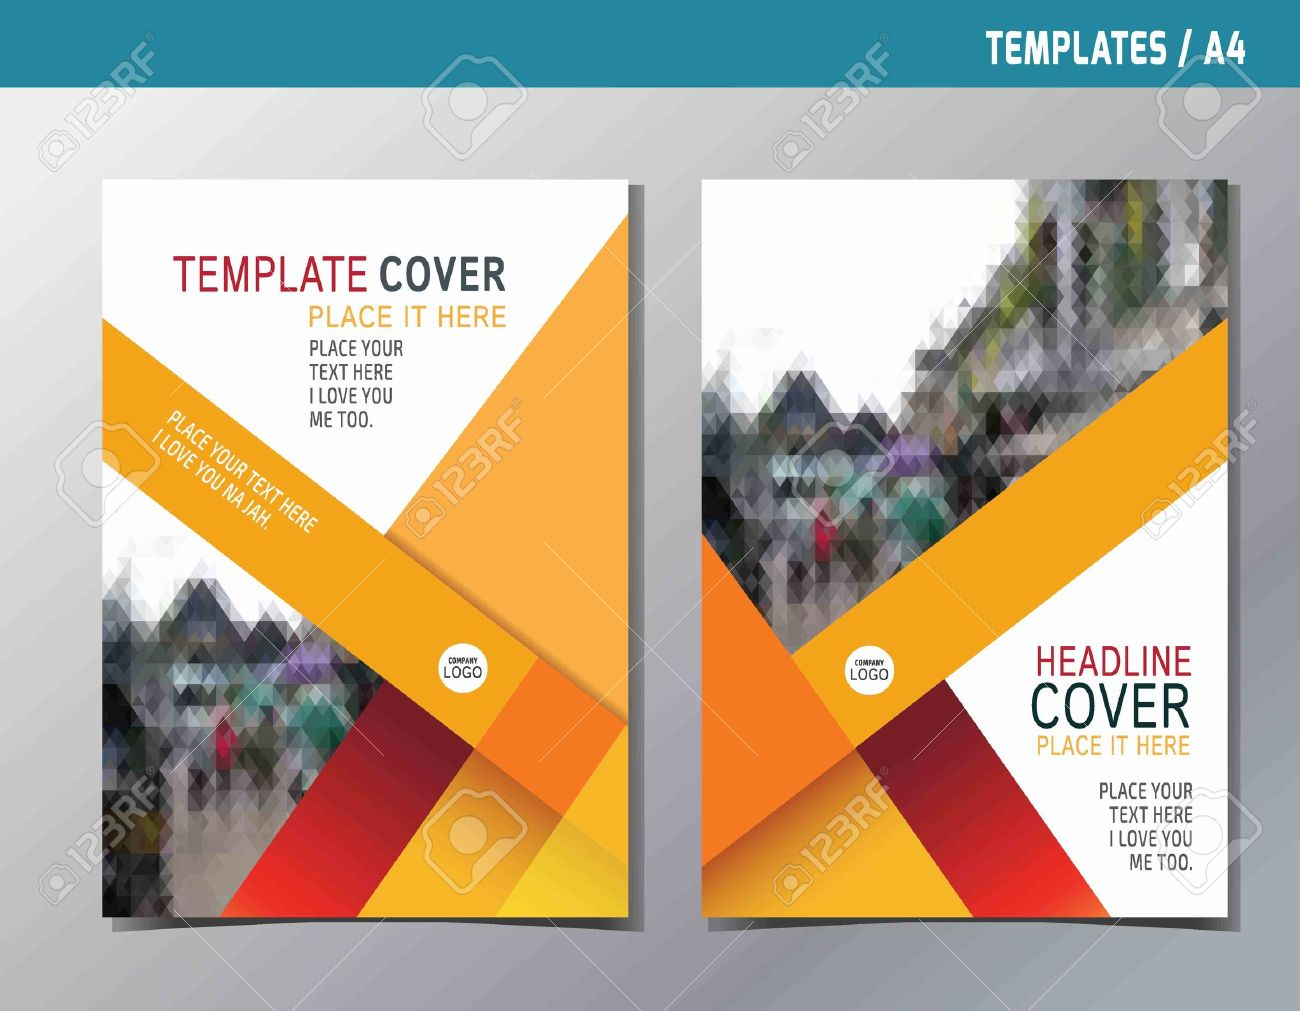 red yellow abstract flat vector annual reportleaflet brochure template A4 size designflyer modern multipurpose stylebook cover layout design - 56917525